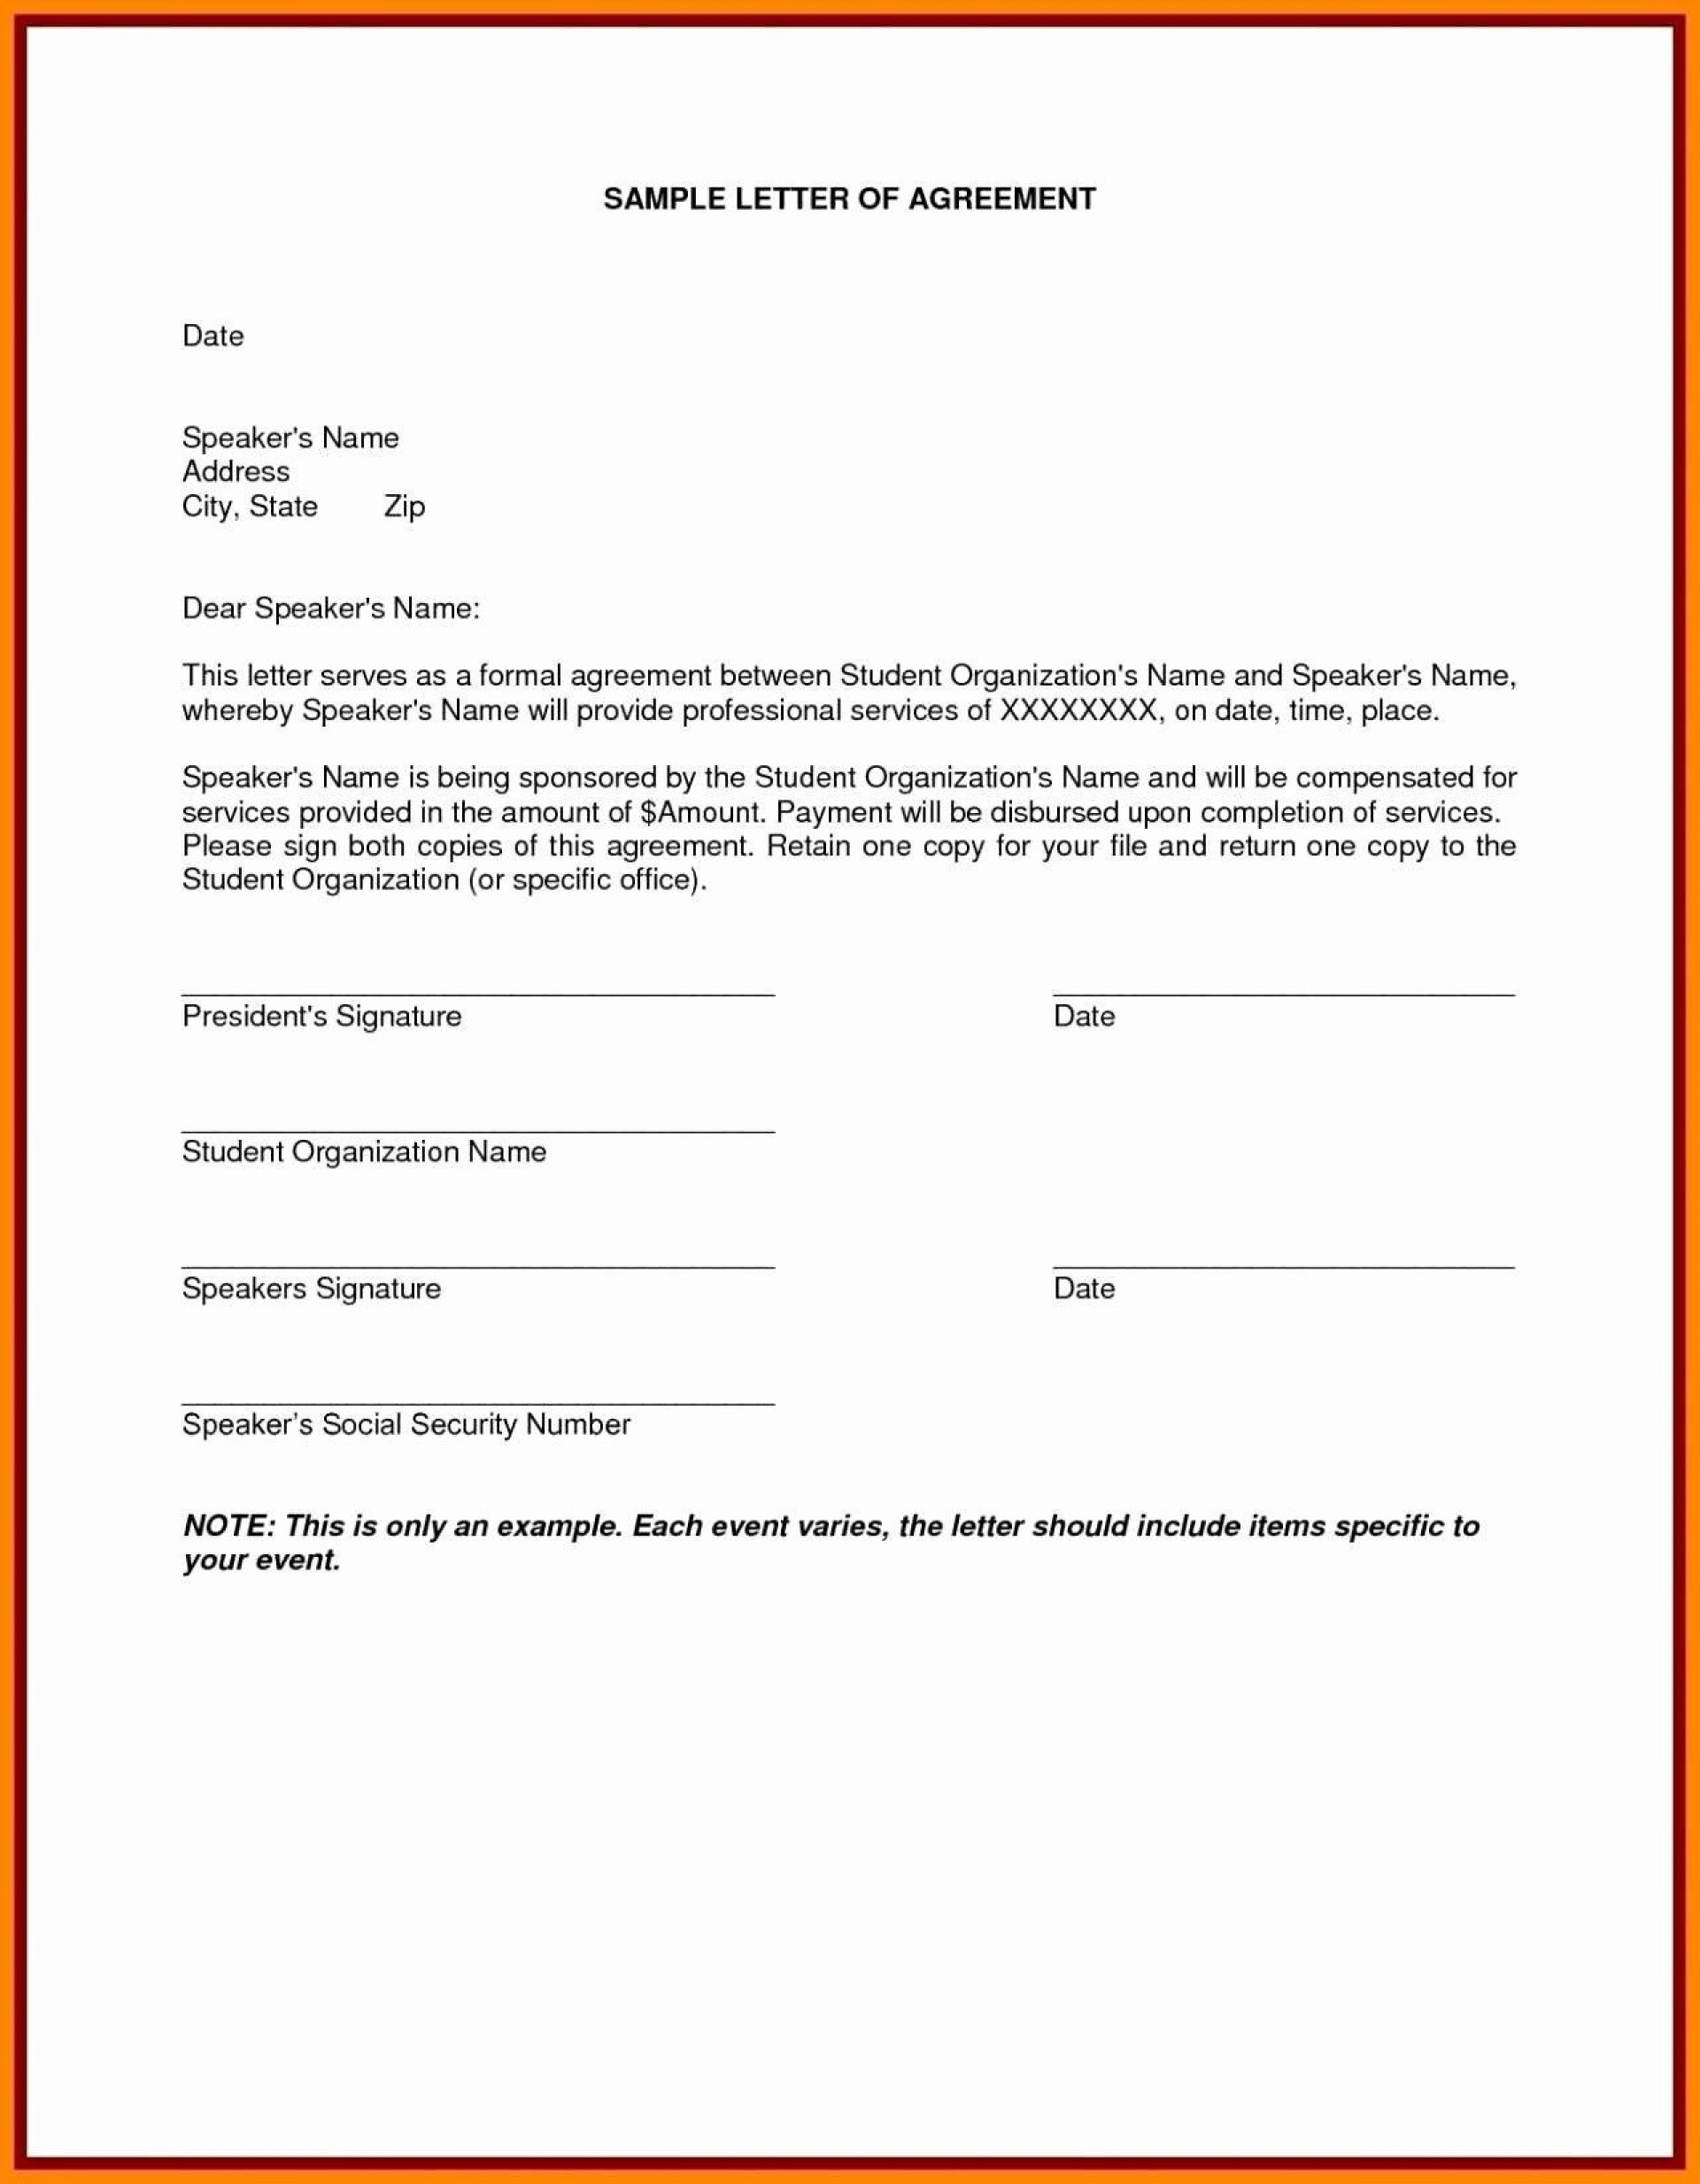 001 Awful Sample Letter Of Agreement Template Image  For A In Project Prepare1920